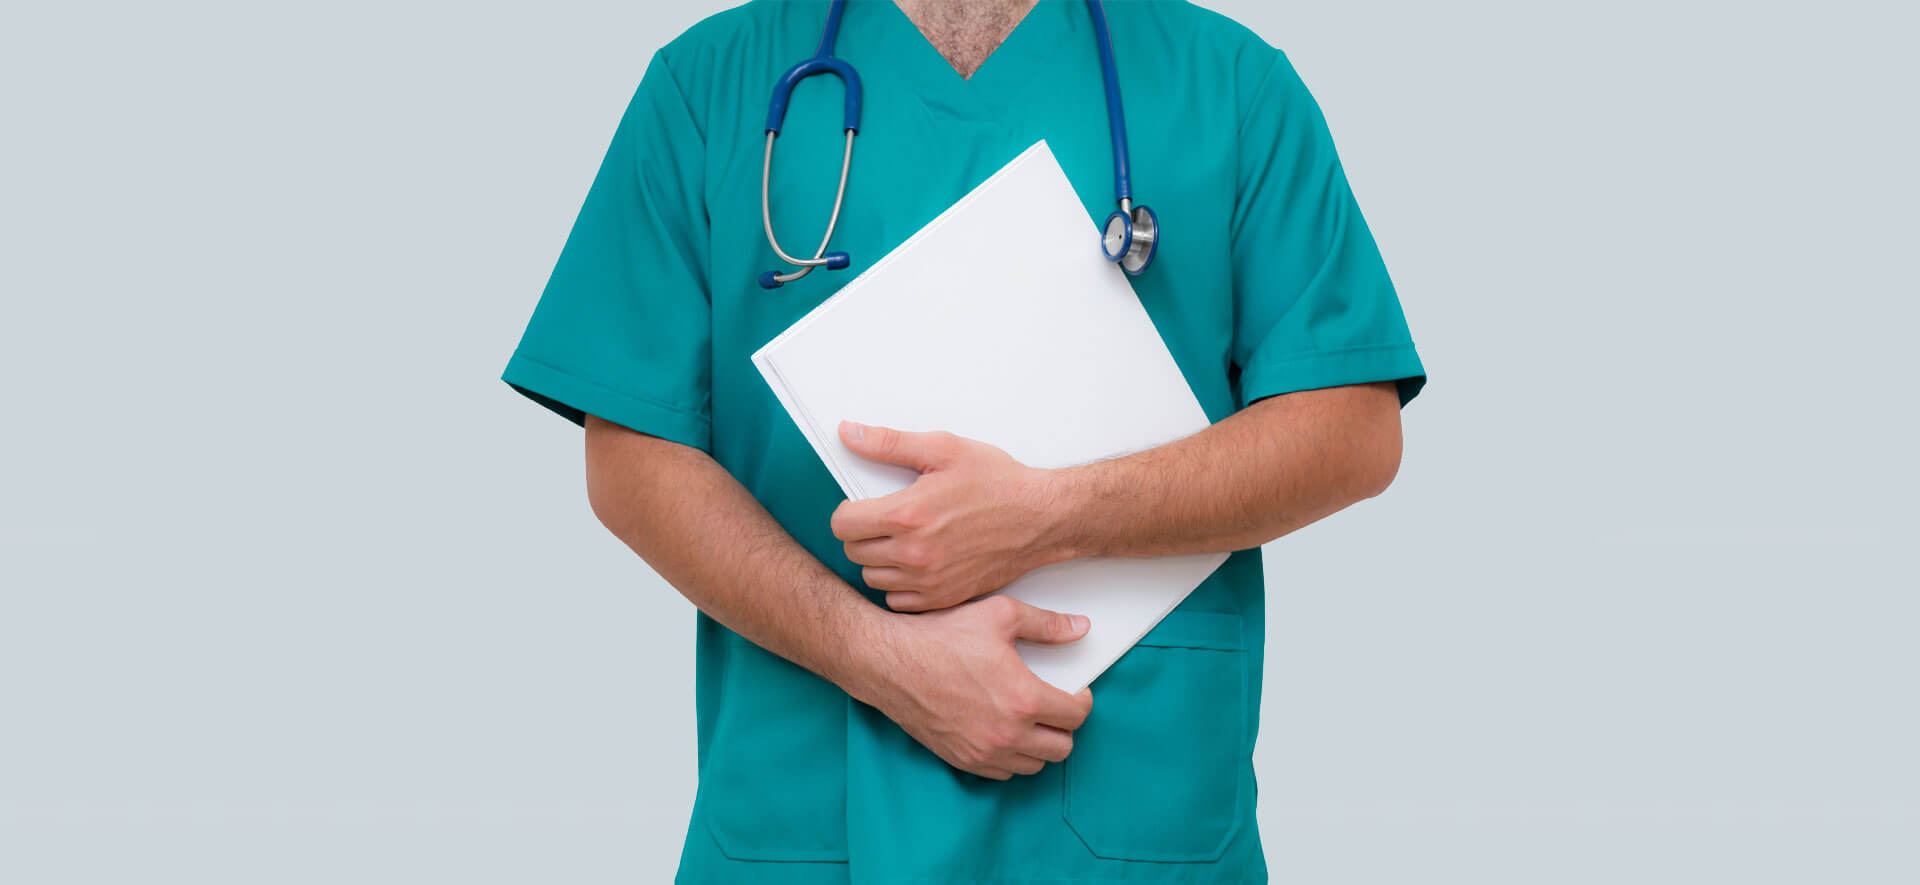 Doctor with stethoscope and holding file isolated on grey background